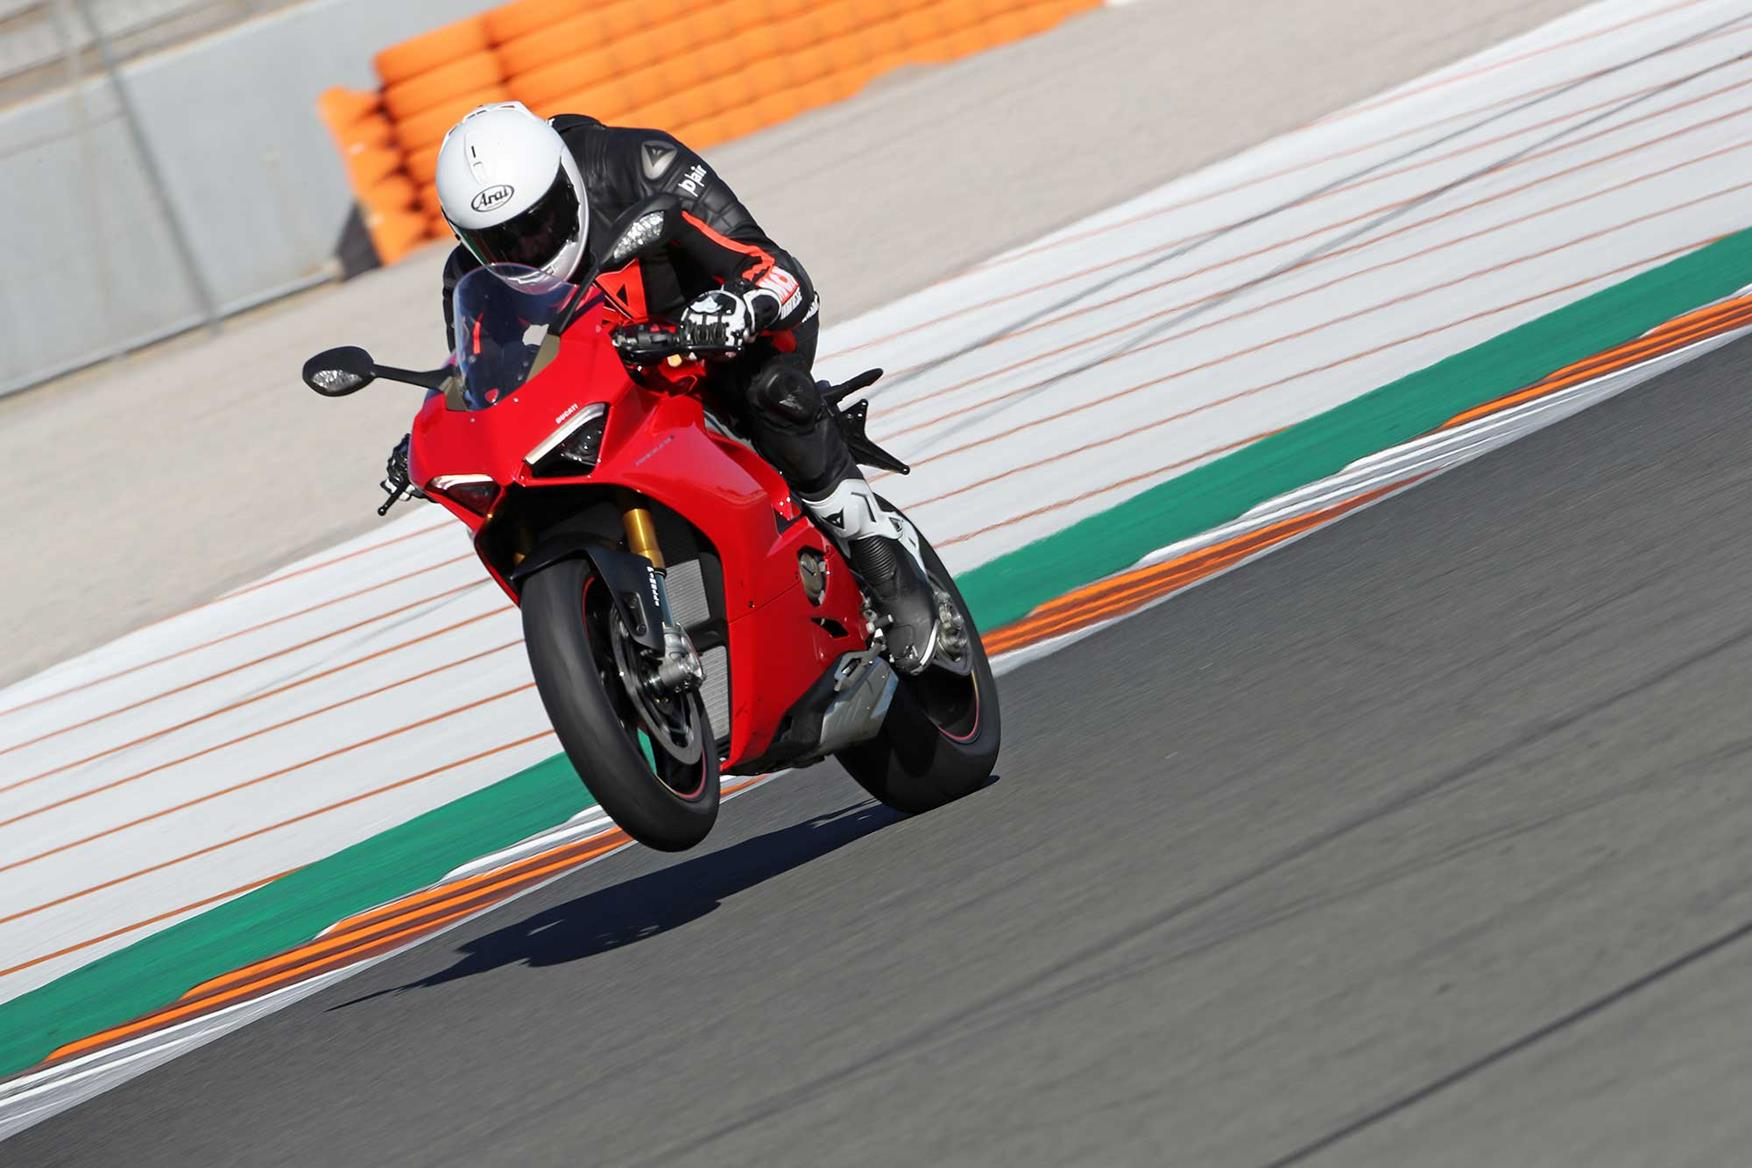 The Ducati Panigale V4 S is the fastest mass-production bike MCN have tested